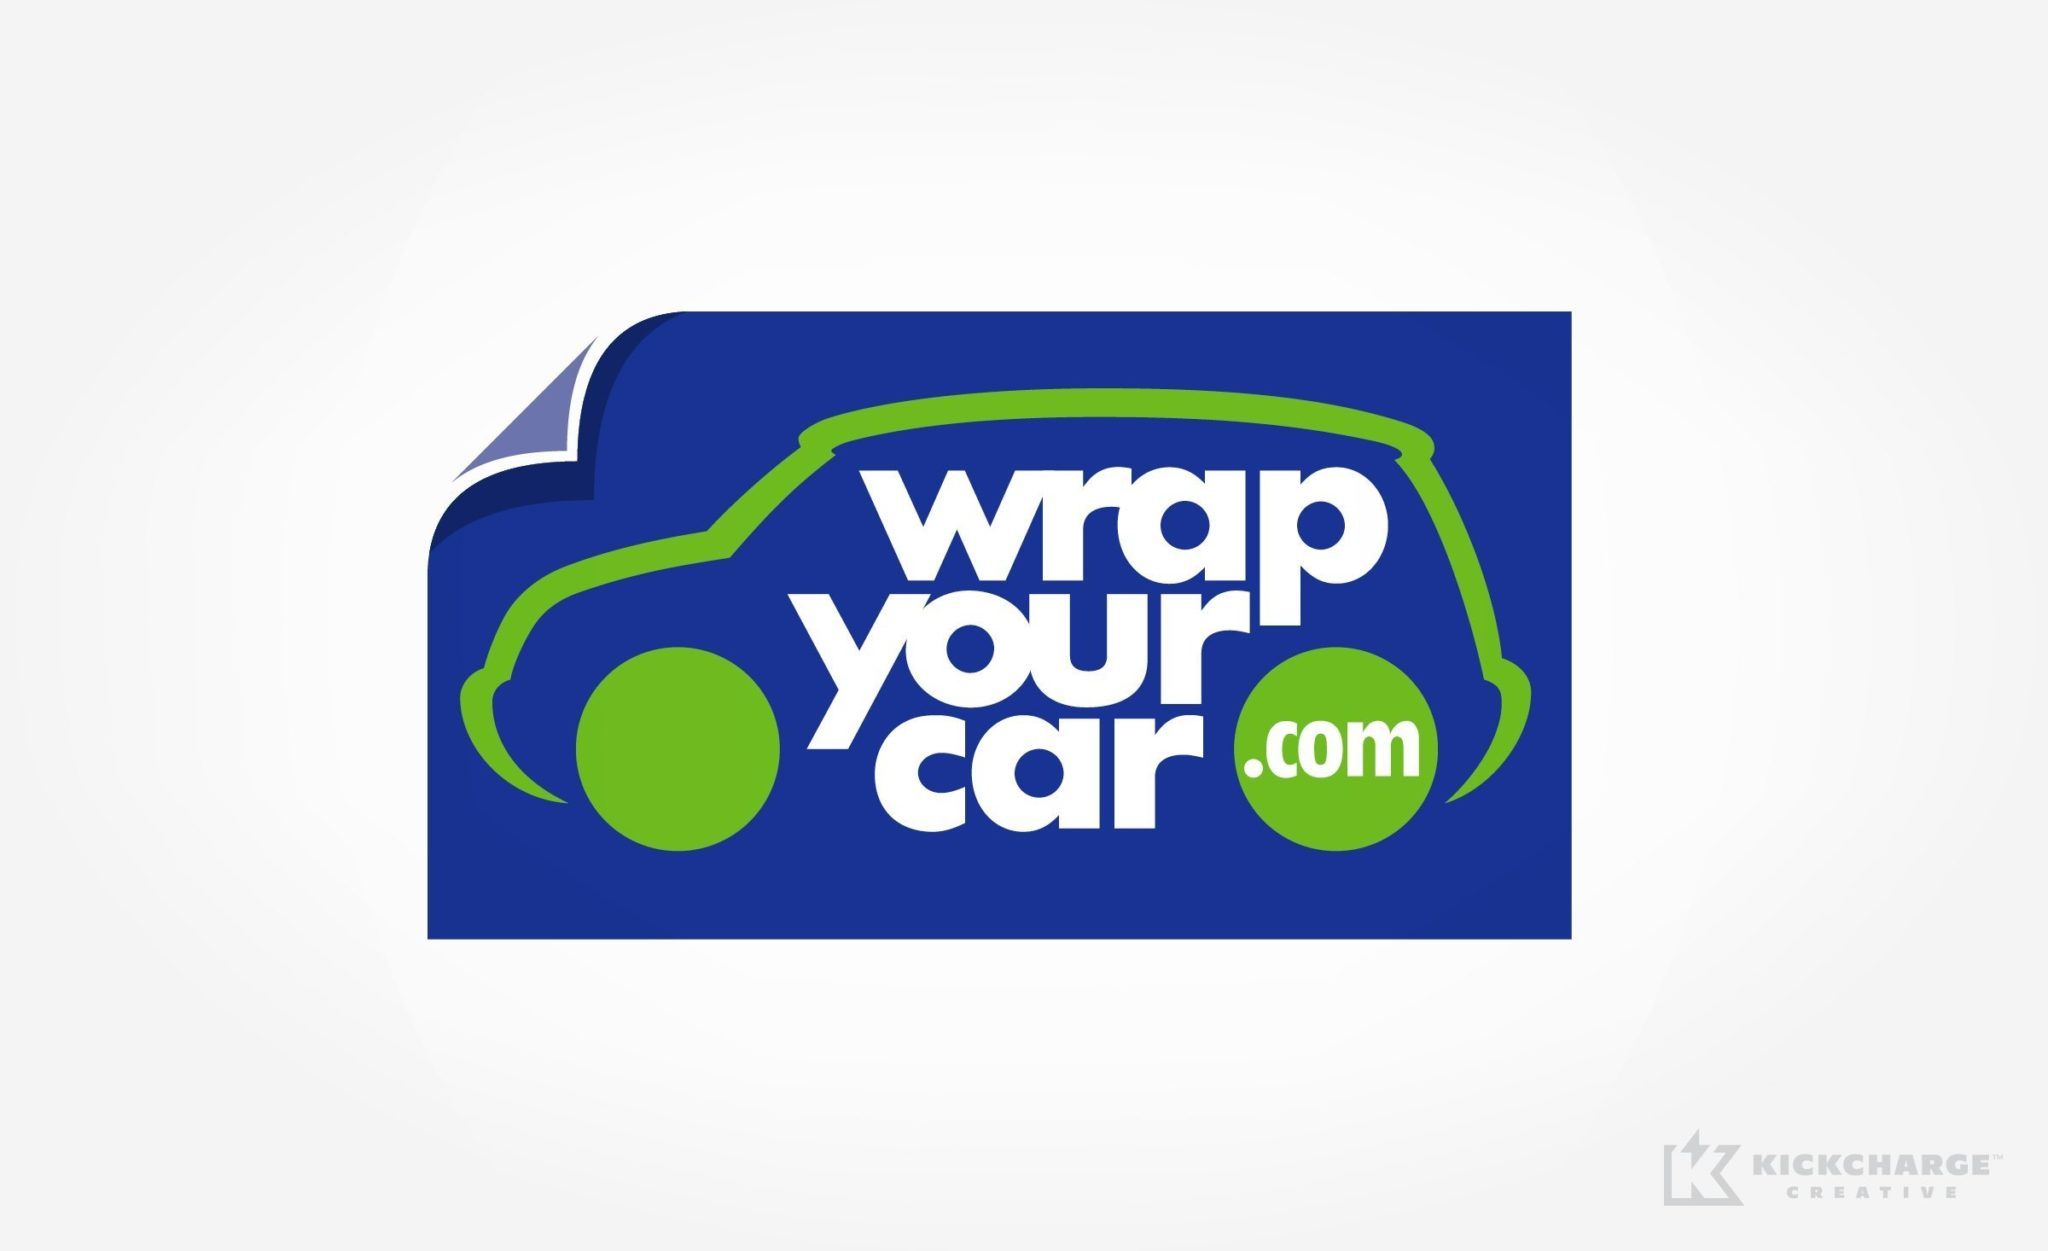 Wrap your Car